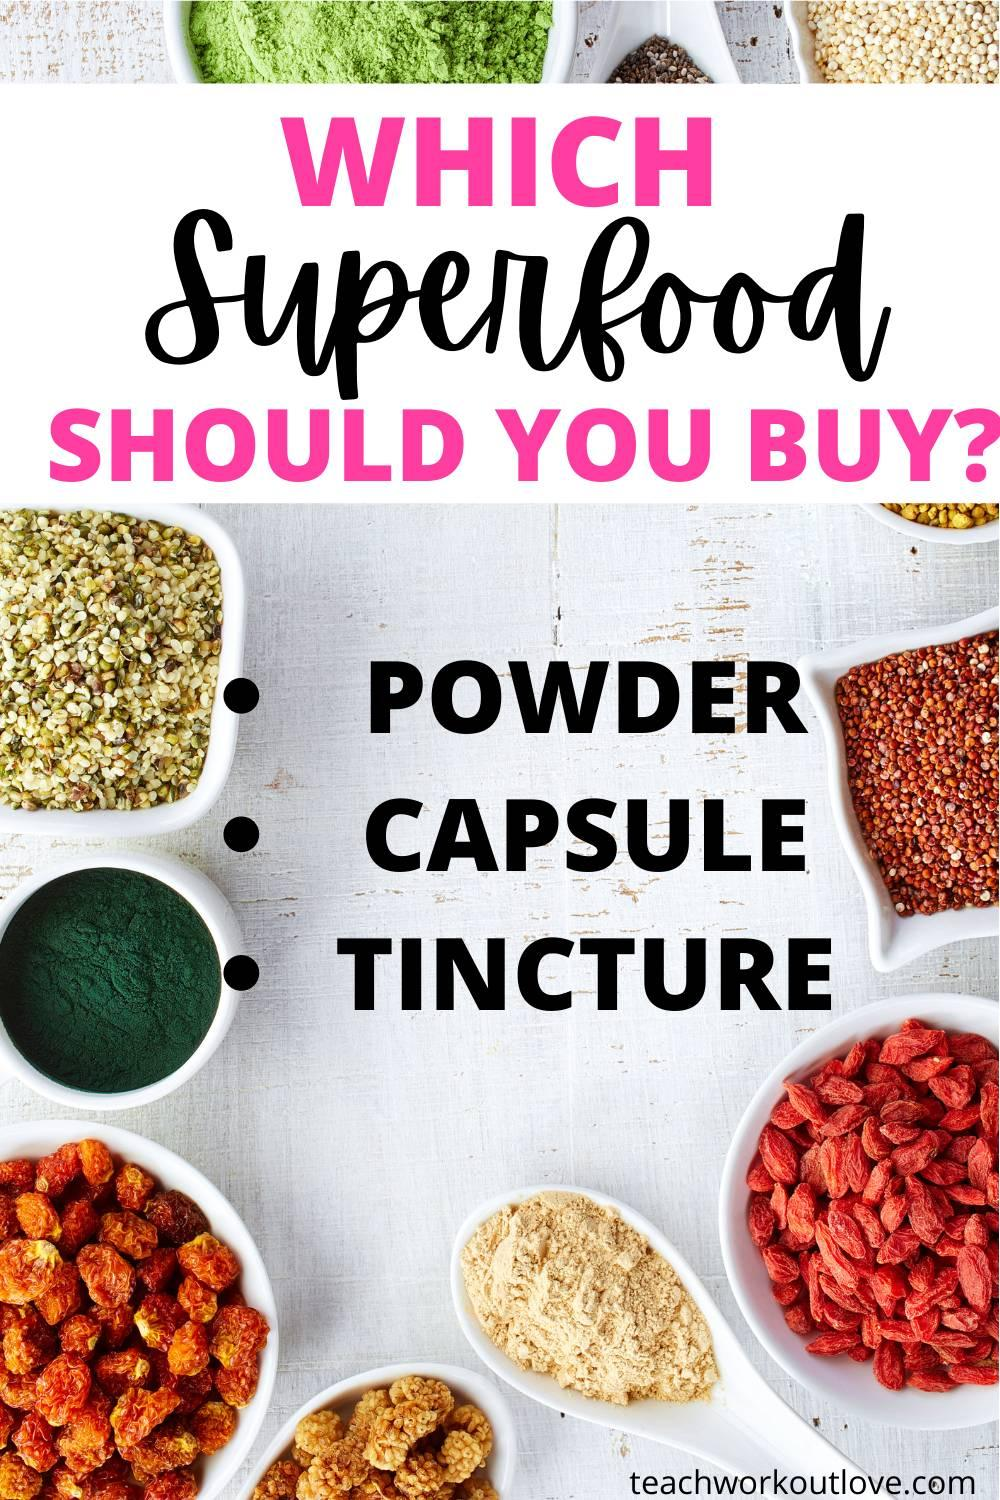 In this piece, we're listing the pros and cons of each format to guide you on your next superfood shopping.